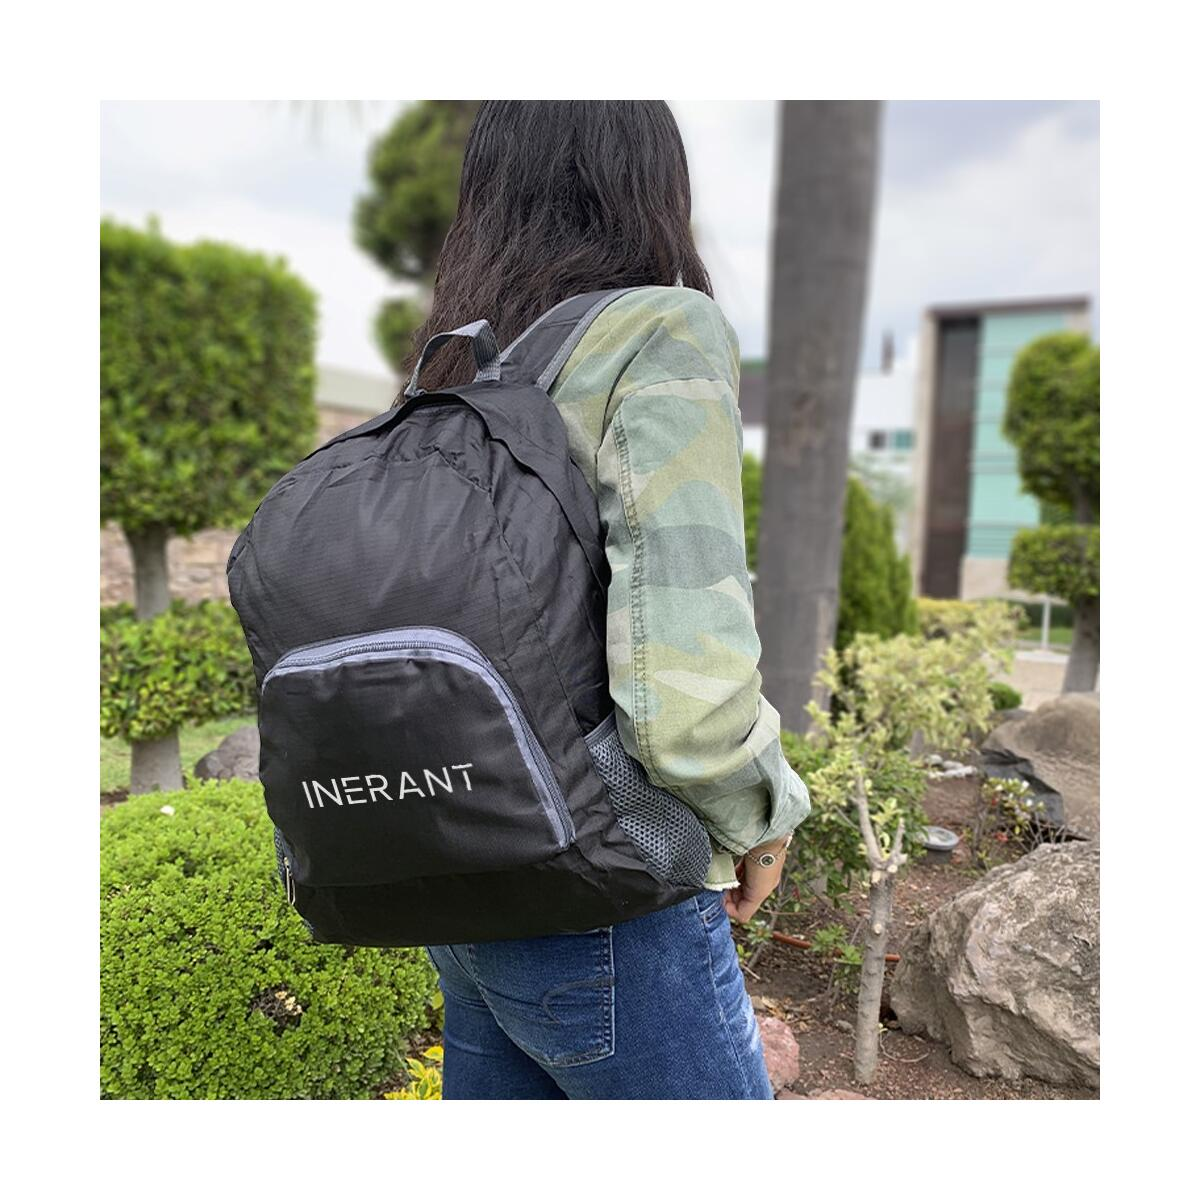 INERANT 20L Lightweight Packable Backpack - 2 Foldable Travel Bags - Black/Gray